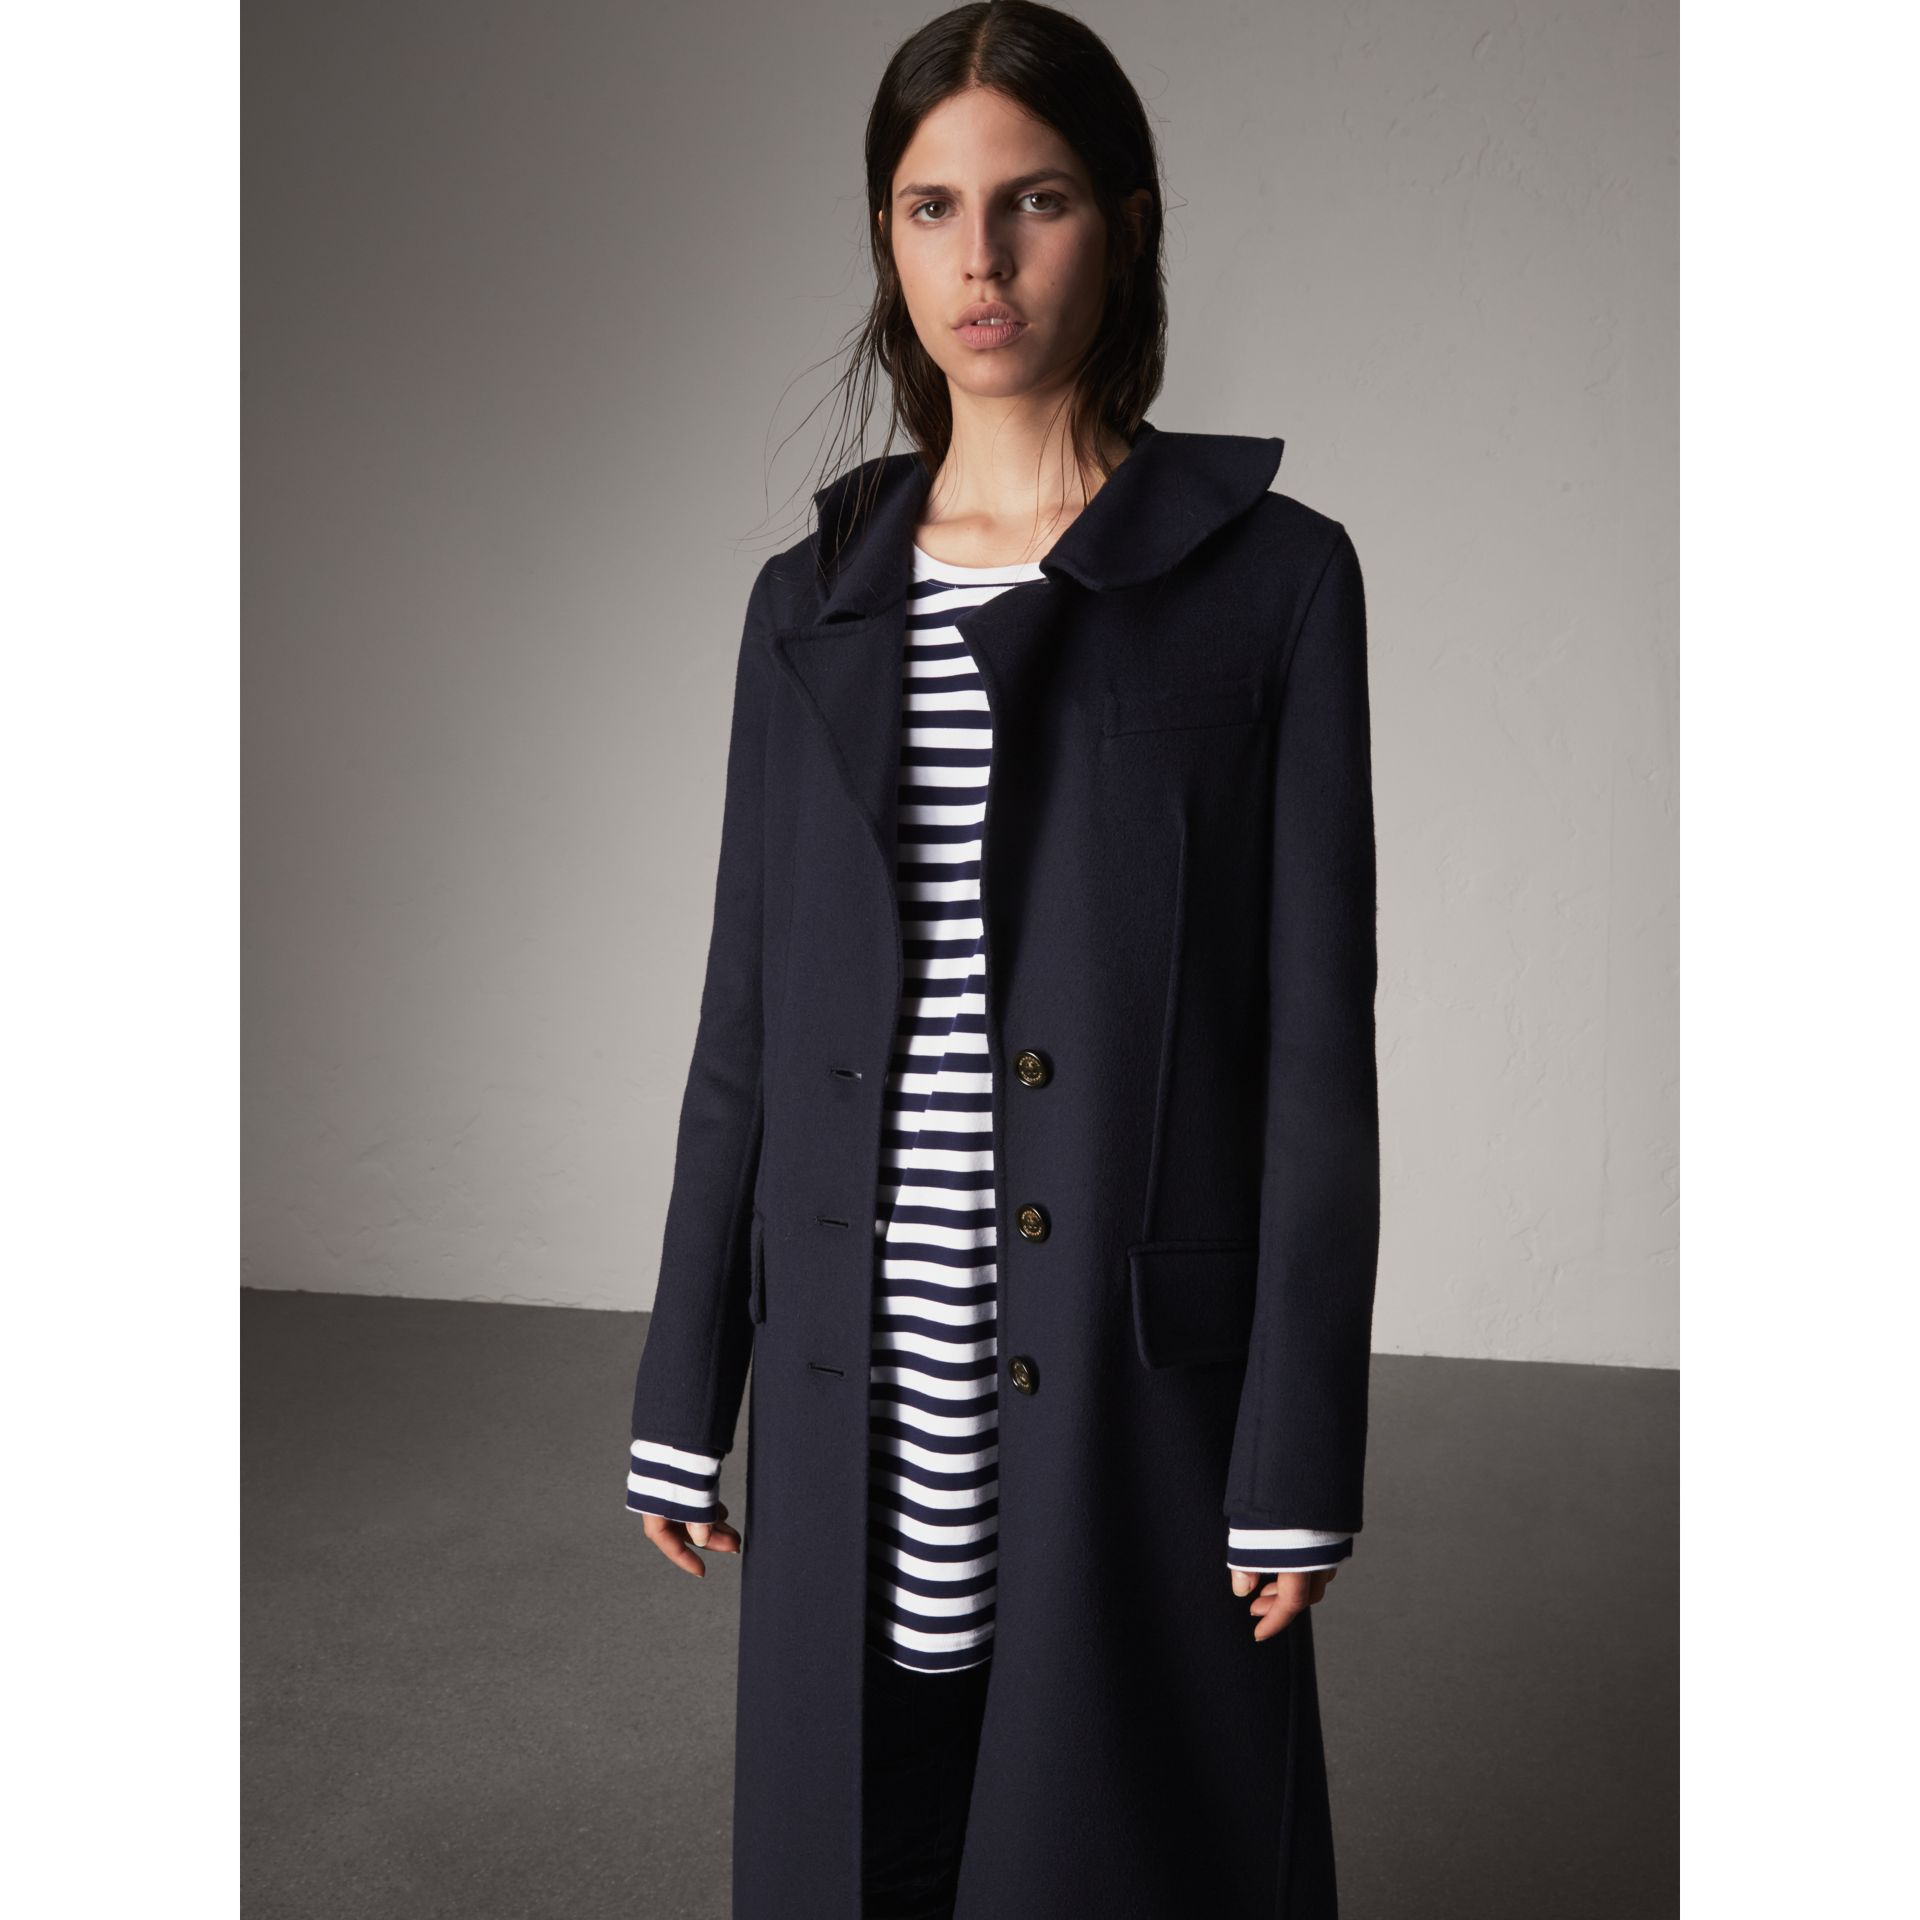 Ruffled Collar Wool Cashmere Coat in Navy - Women | Burberry Canada - gallery image 6